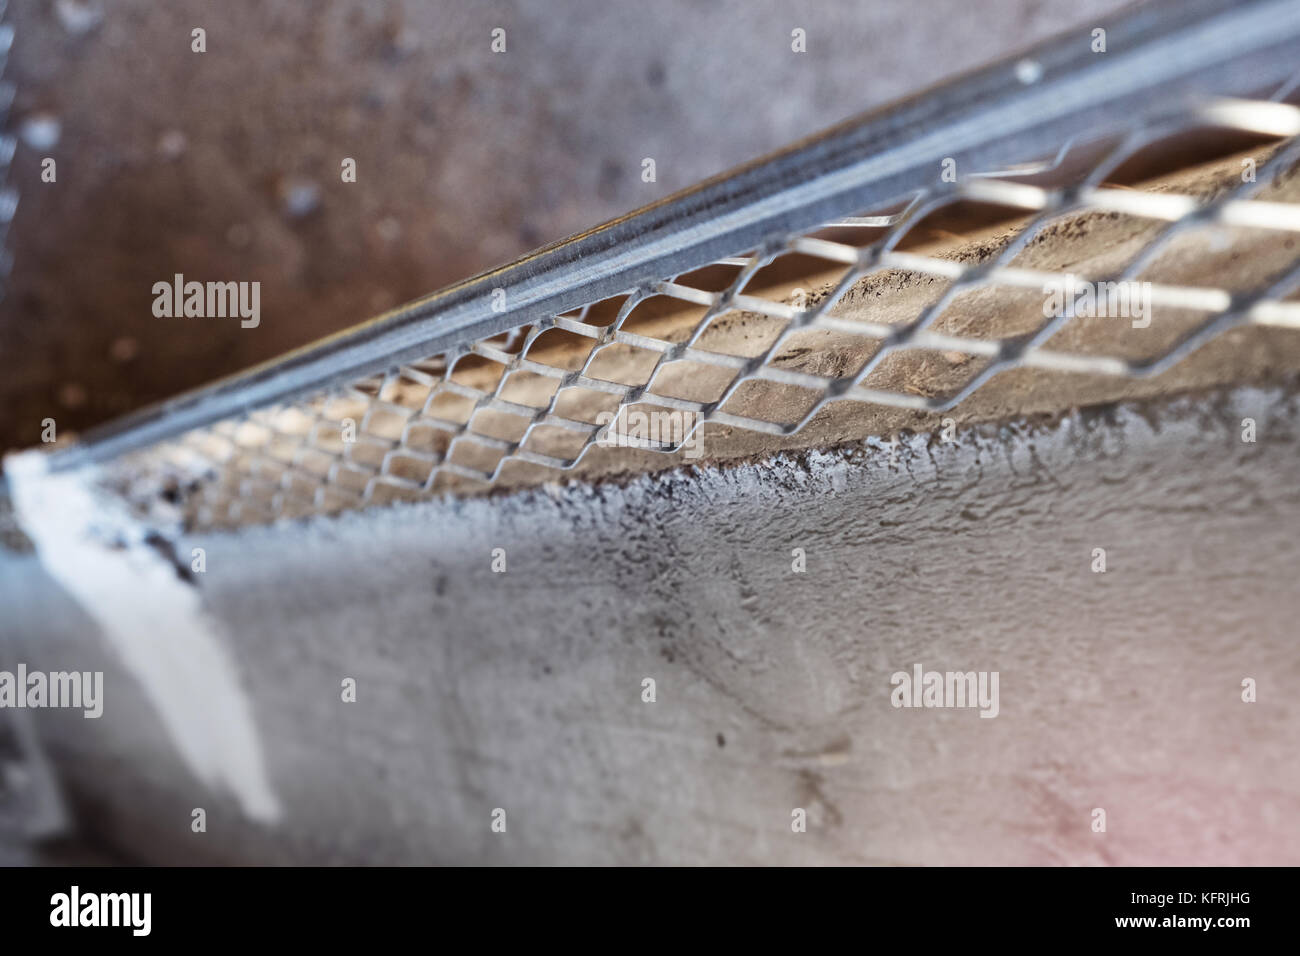 Plastering metal bead installed on the concrete wall corner - Stock Image